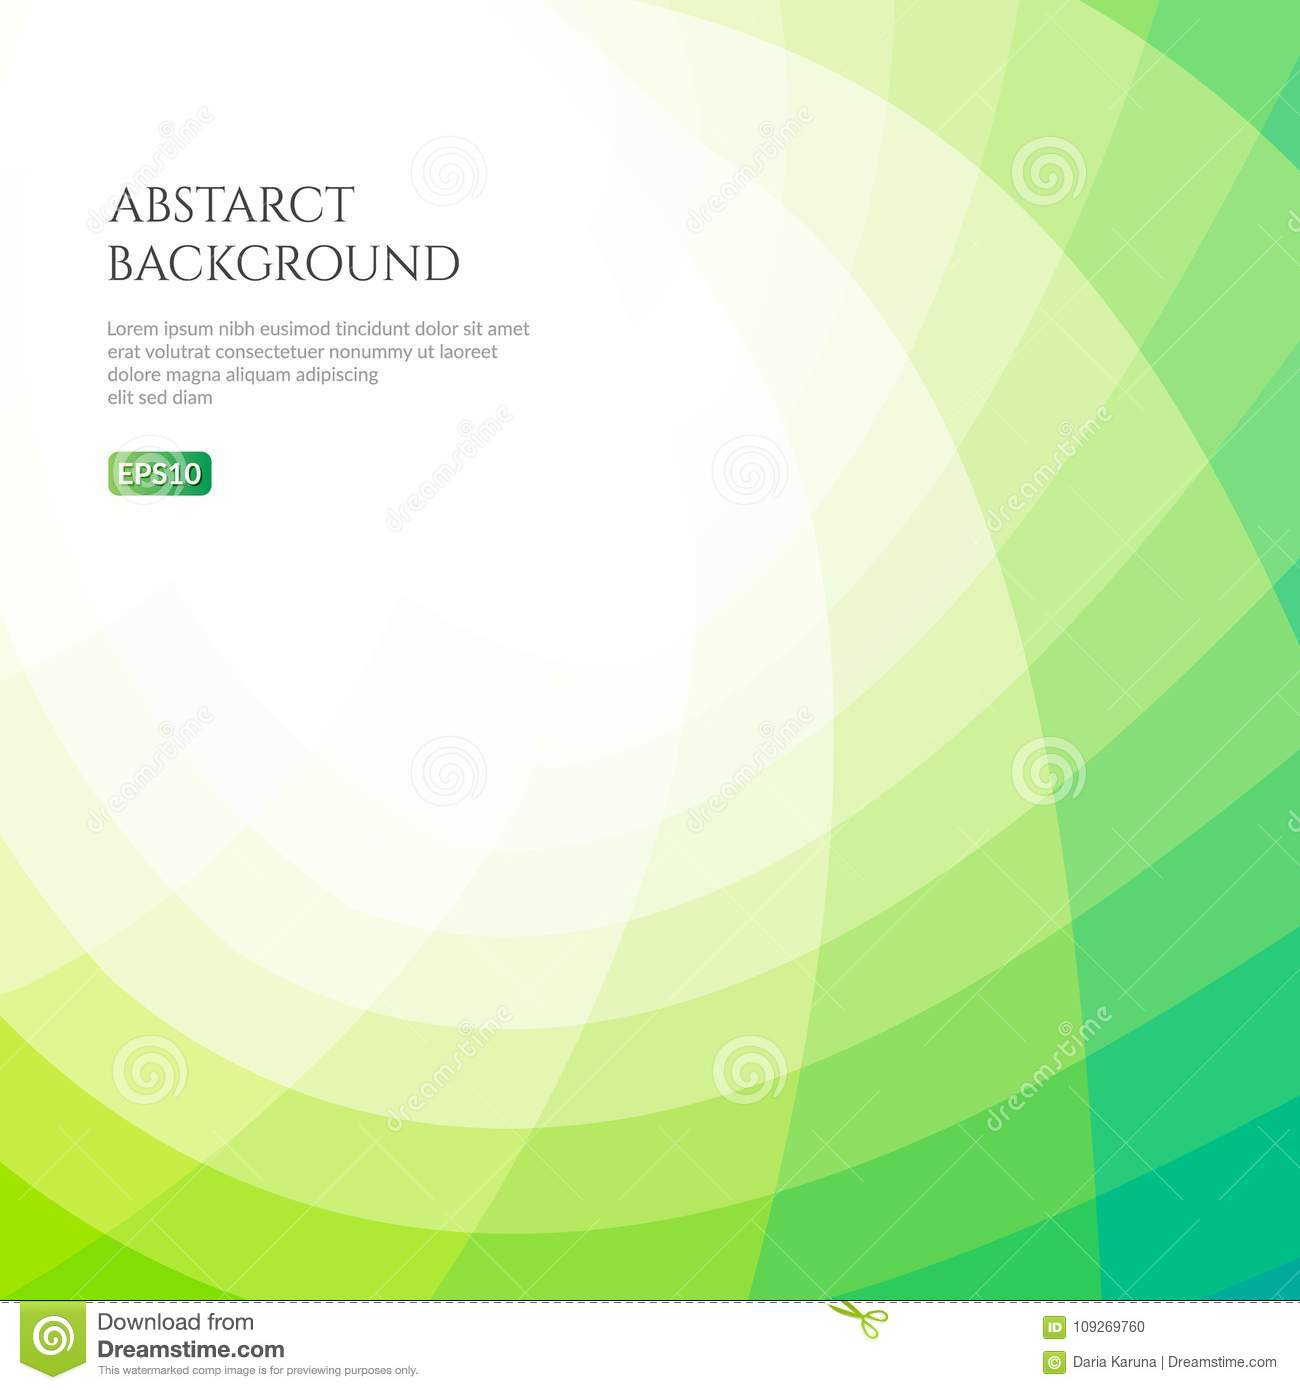 Abstract background of geometric shapes. Space for text.